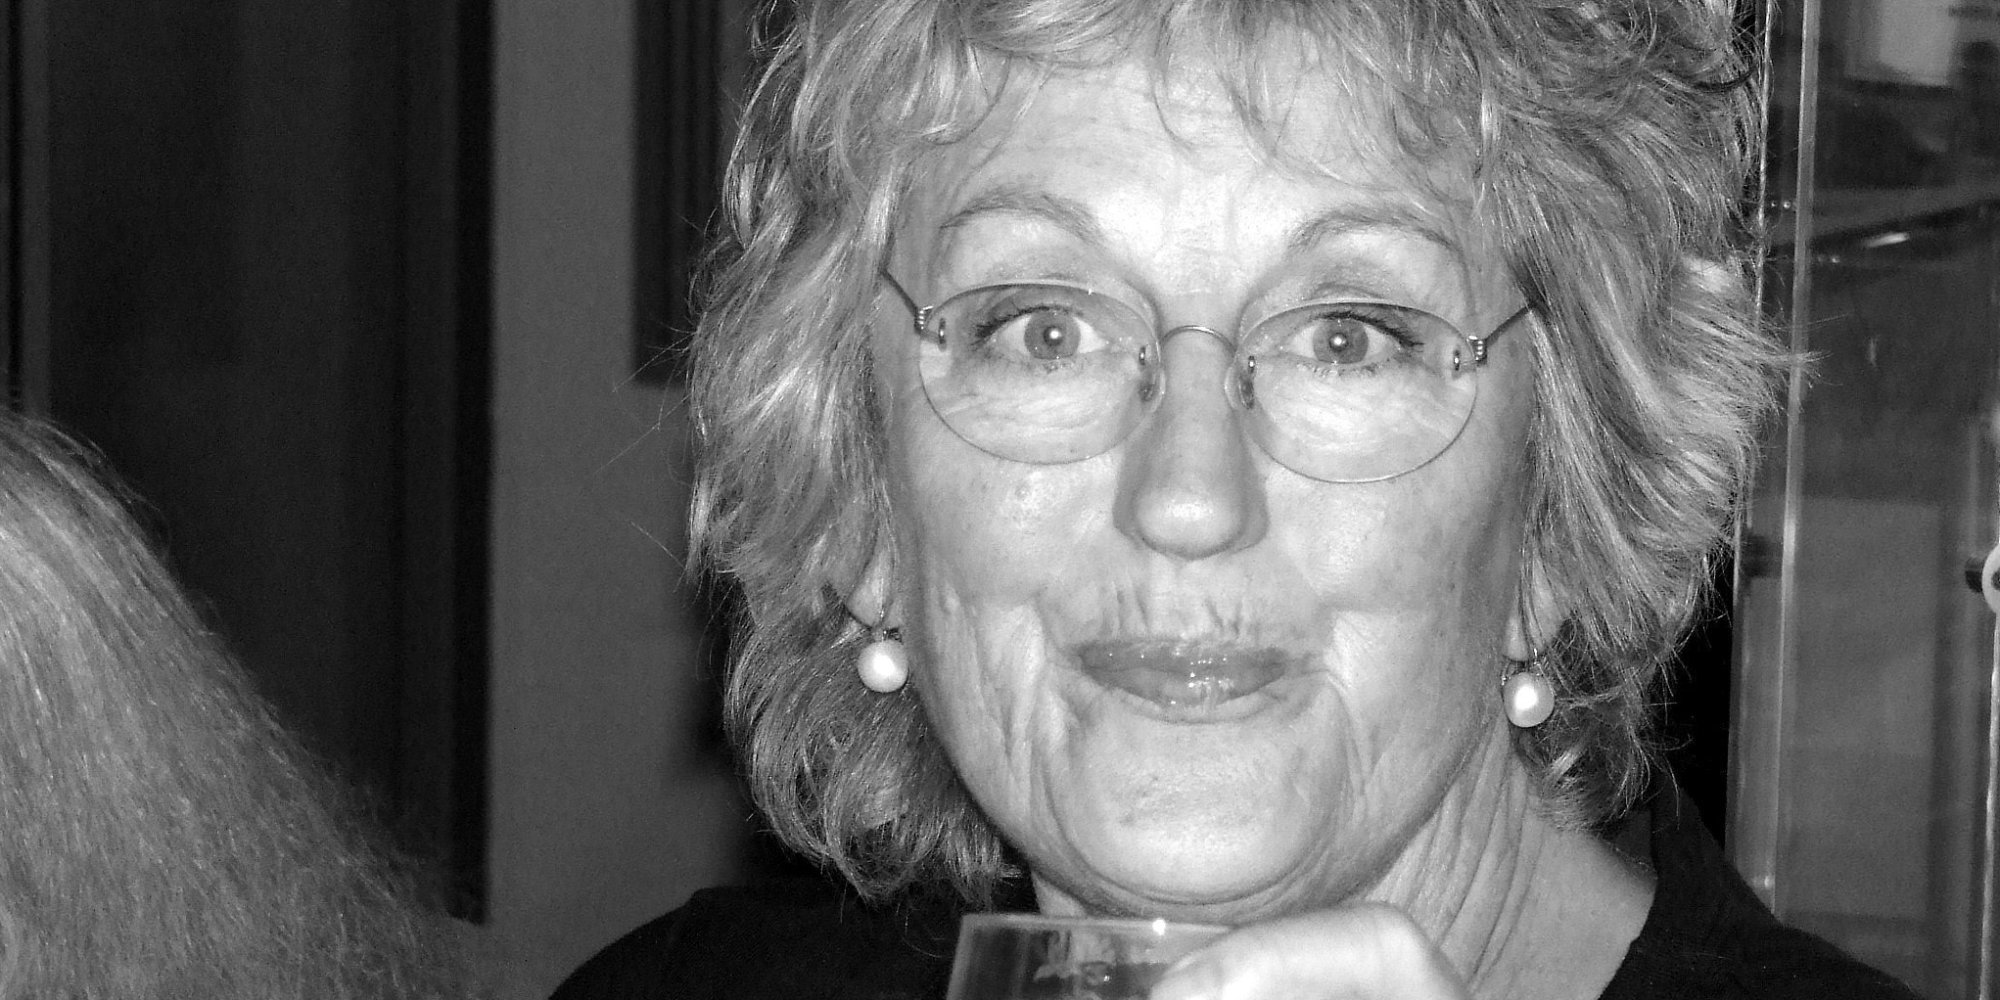 germaine greer - photo #21